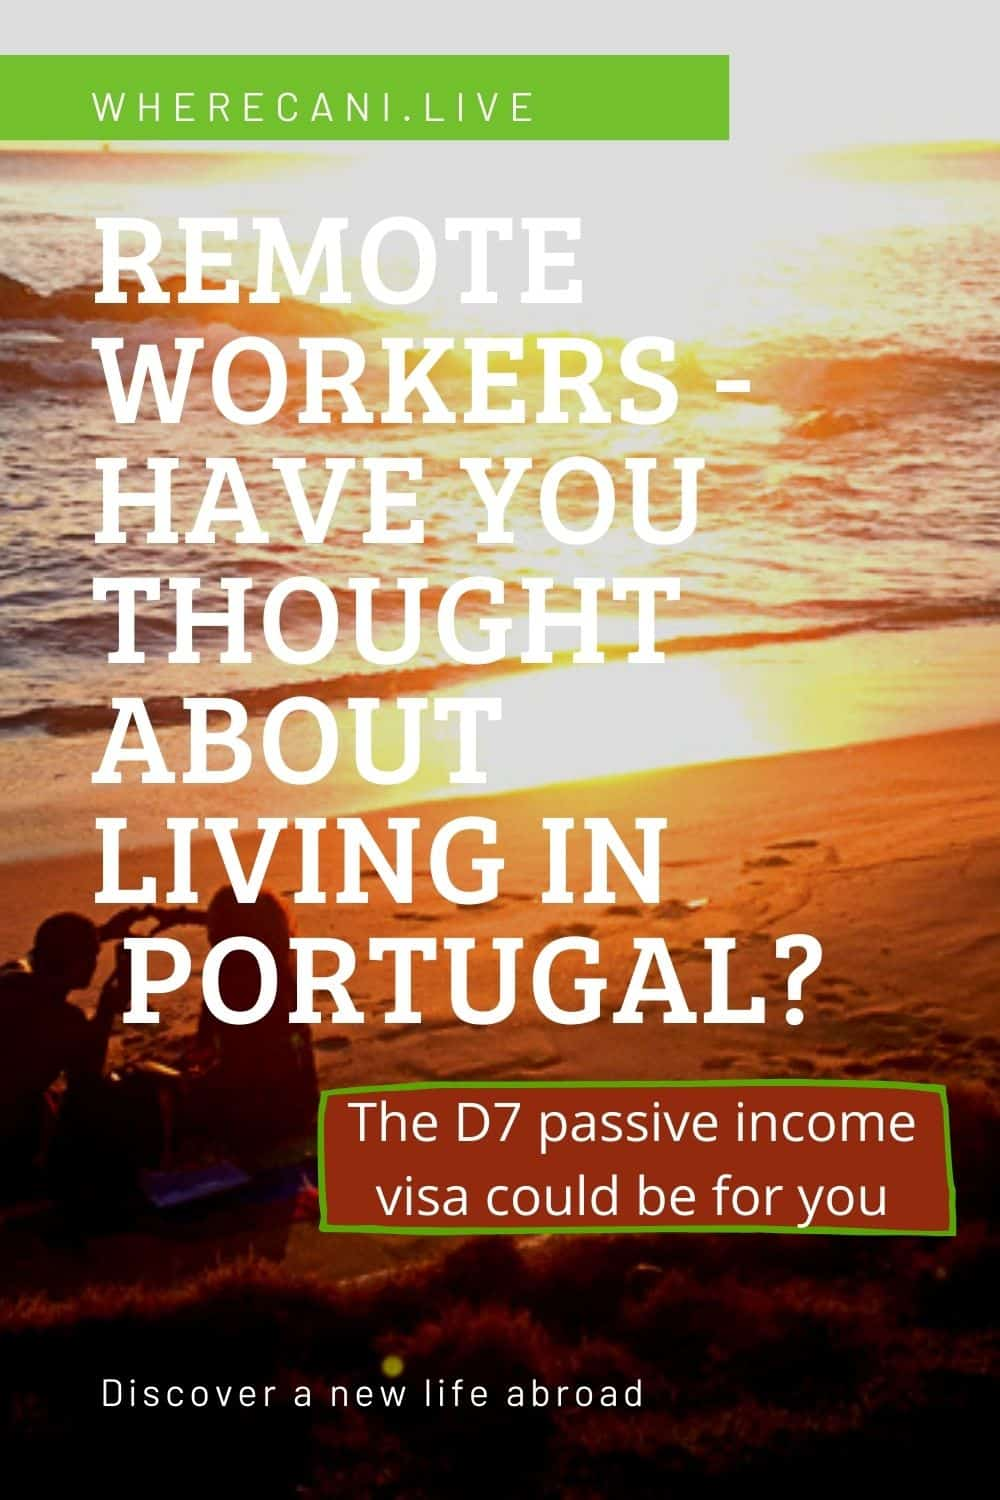 Remote workers are loving the Portugal D7 passive income visa as a way of living in this country #portugal #visa #remoteworker via @wherecanilive